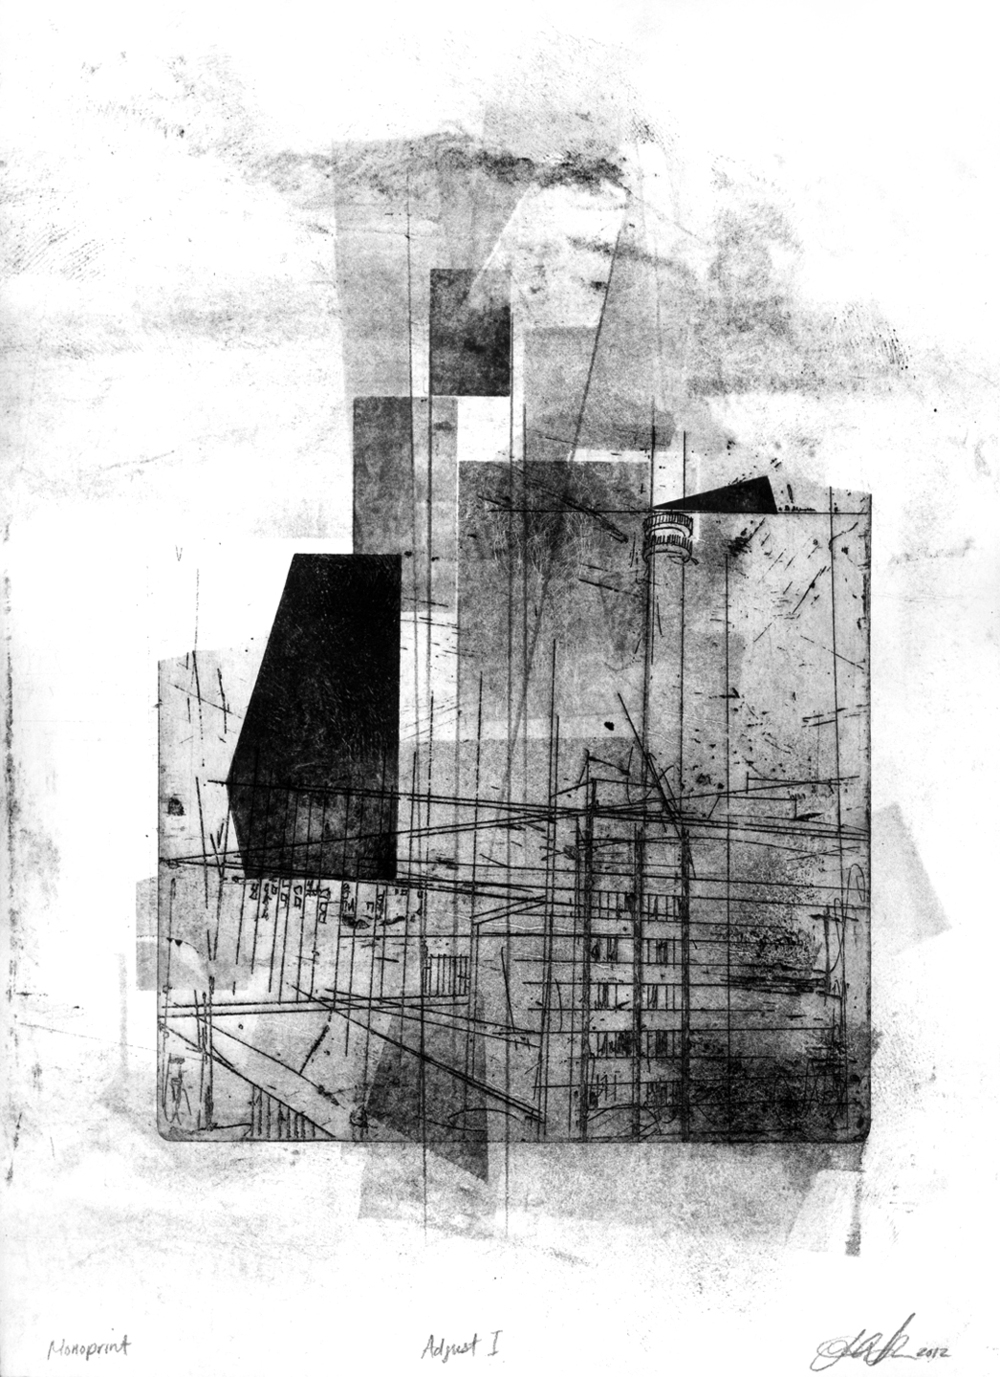 Adjust I, 2012, intaglio, relief and drawing on paper, 11 x 15in